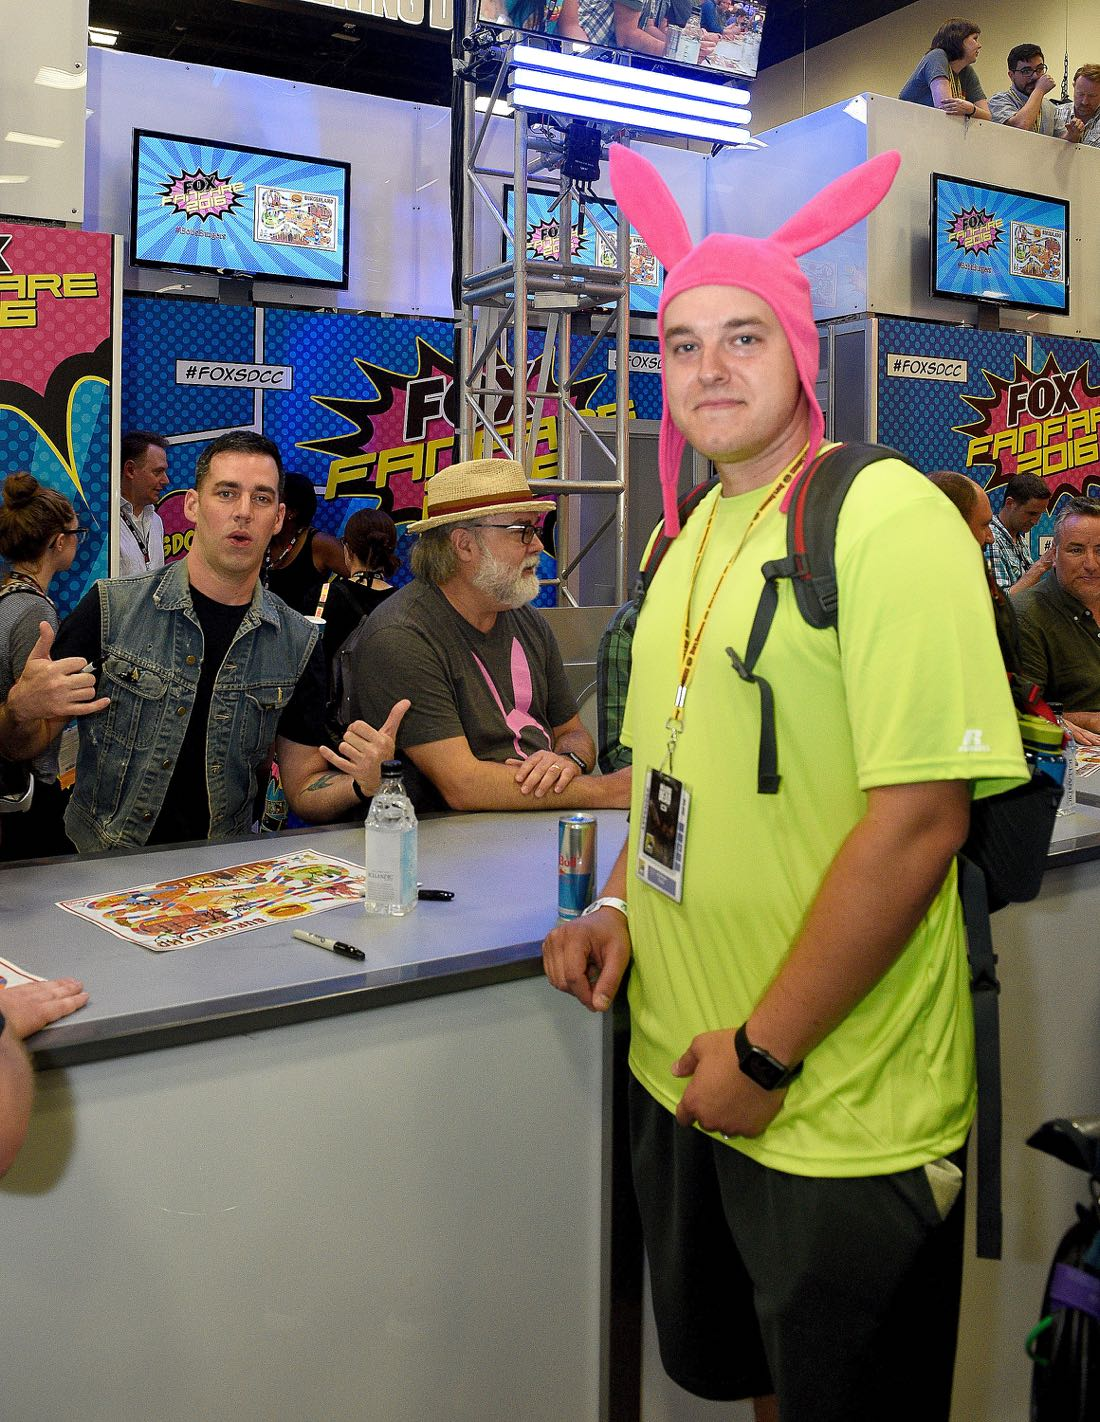 FOX FANFARE AT SAN DIEGO COMIC-CON © 2016: BOB'S BURGERS cast member John Roberts (L) and a fan during BOB'S BURGERS booth signing on Friday, July 22 at the FOX FANFARE AT SAN DIEGO COMIC-CON © 2016. CR: Alan Hess/FOX © 2016 FOX BROADCASTING